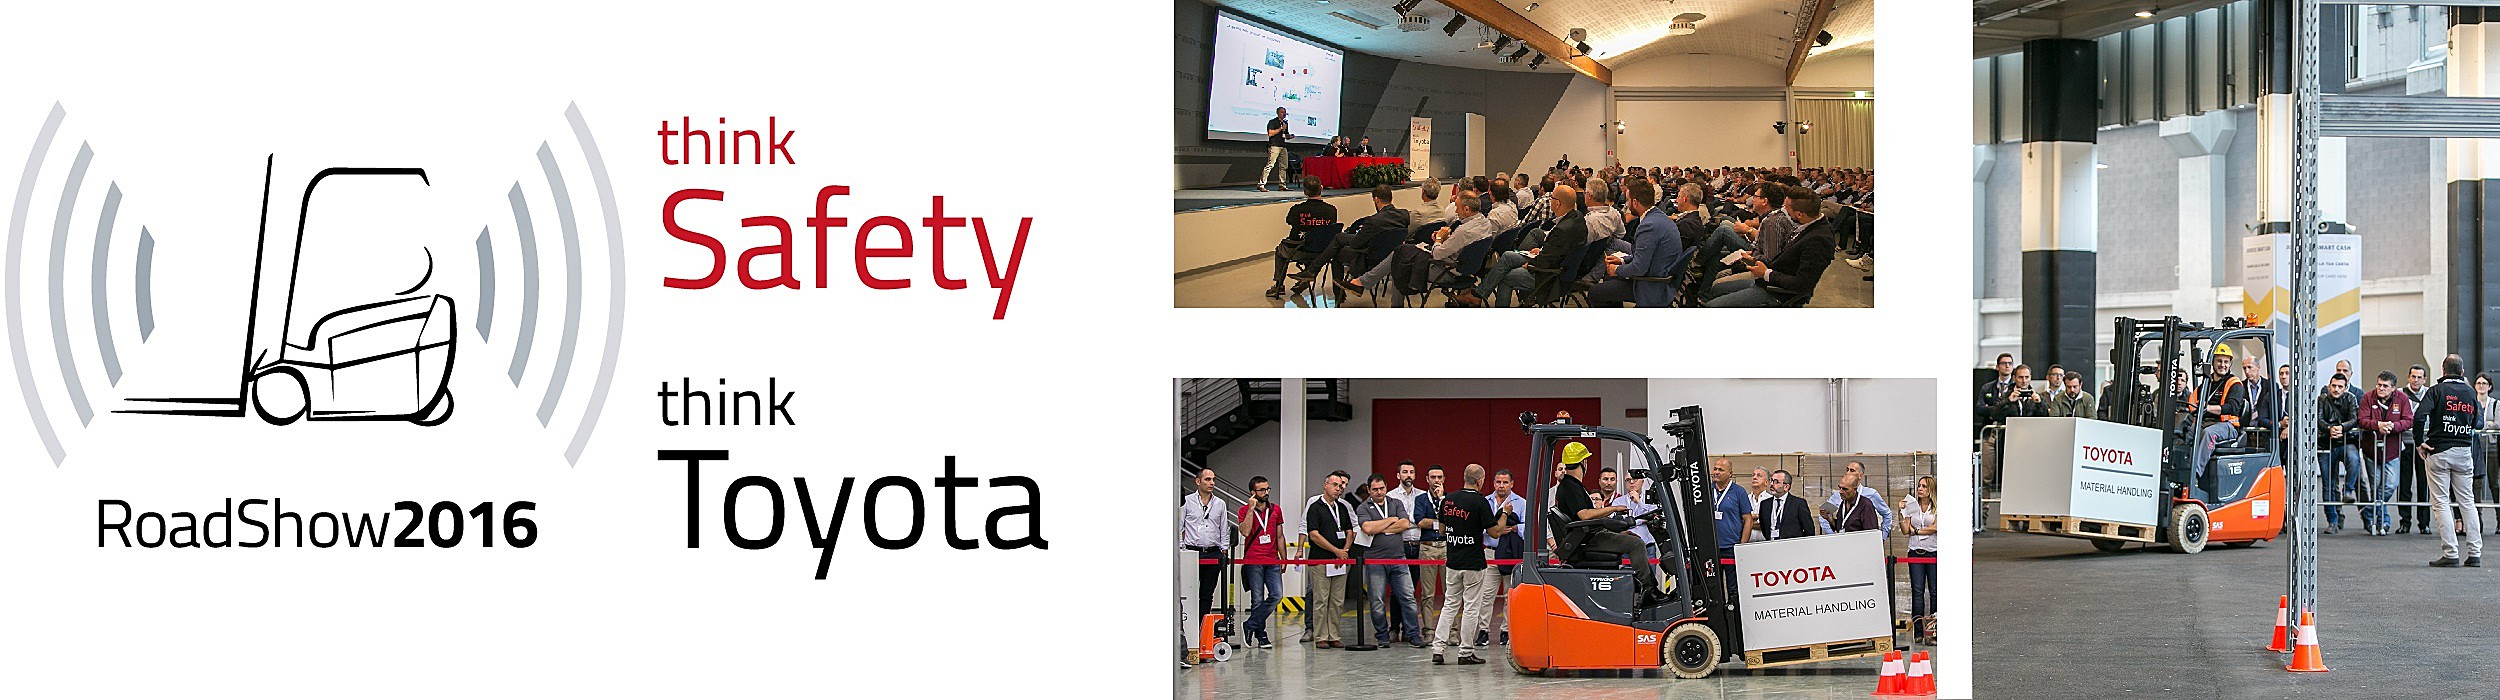 Road Show 2016 - Think Safety, Think Toyota!